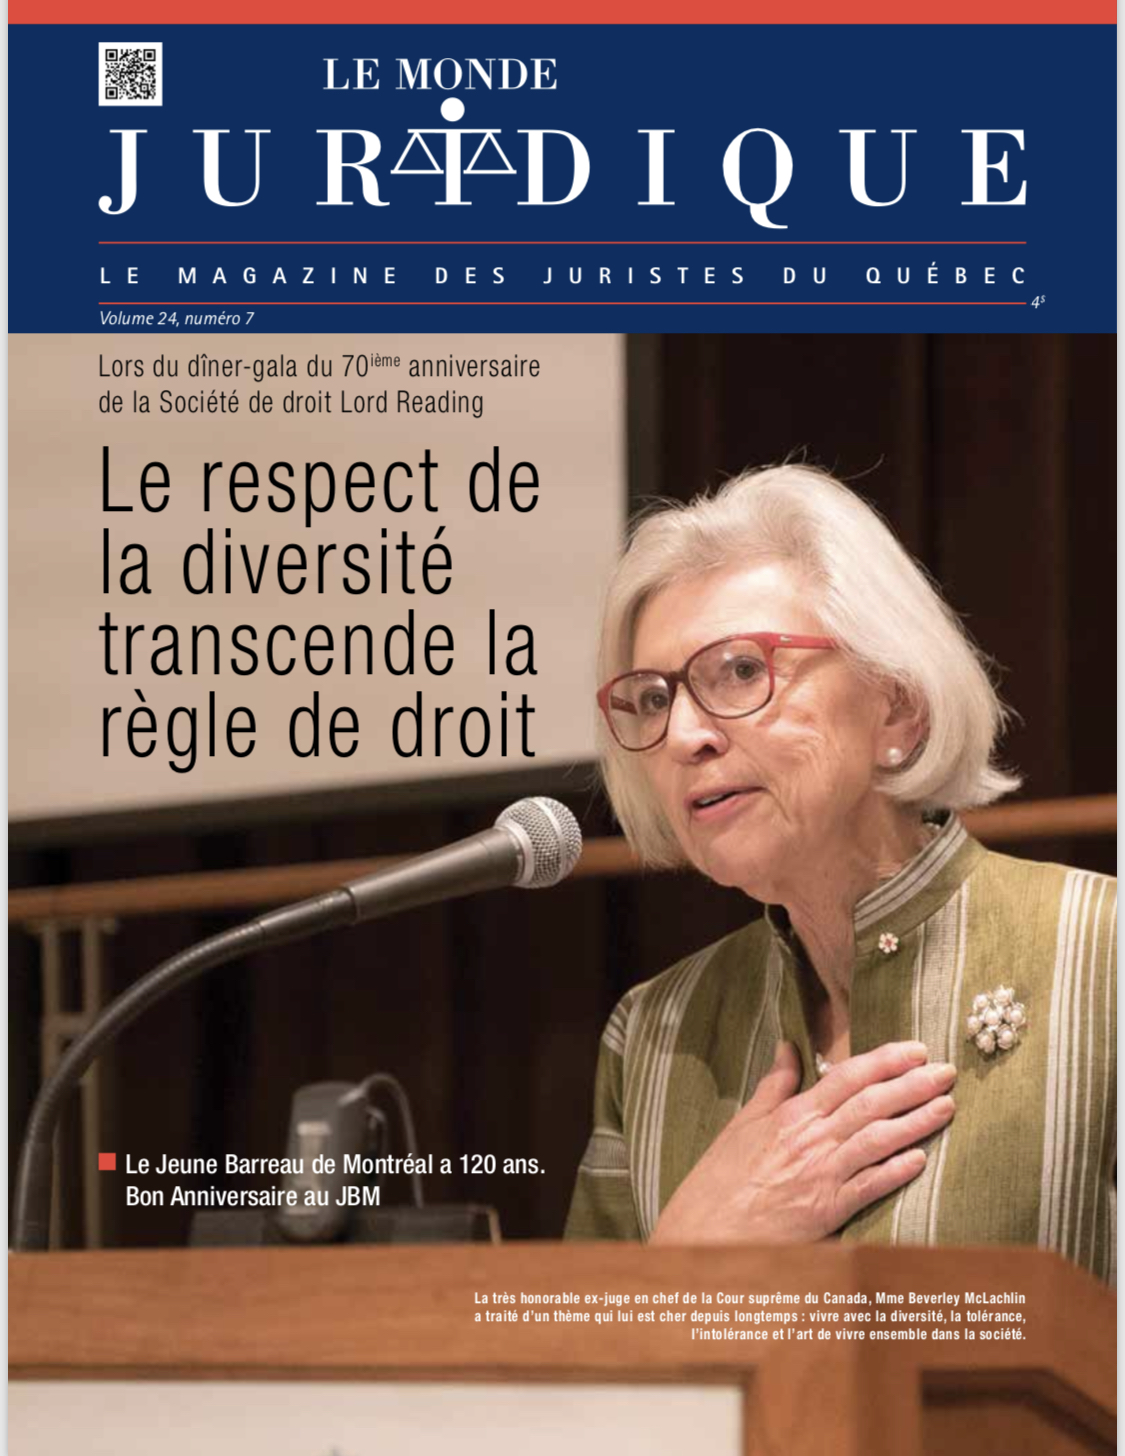 The American College of Trial Lawyers Creates the Beverley McLachlin Access to Justice Award to Honor The Right Hon. Beverley McLachlin, P.C.